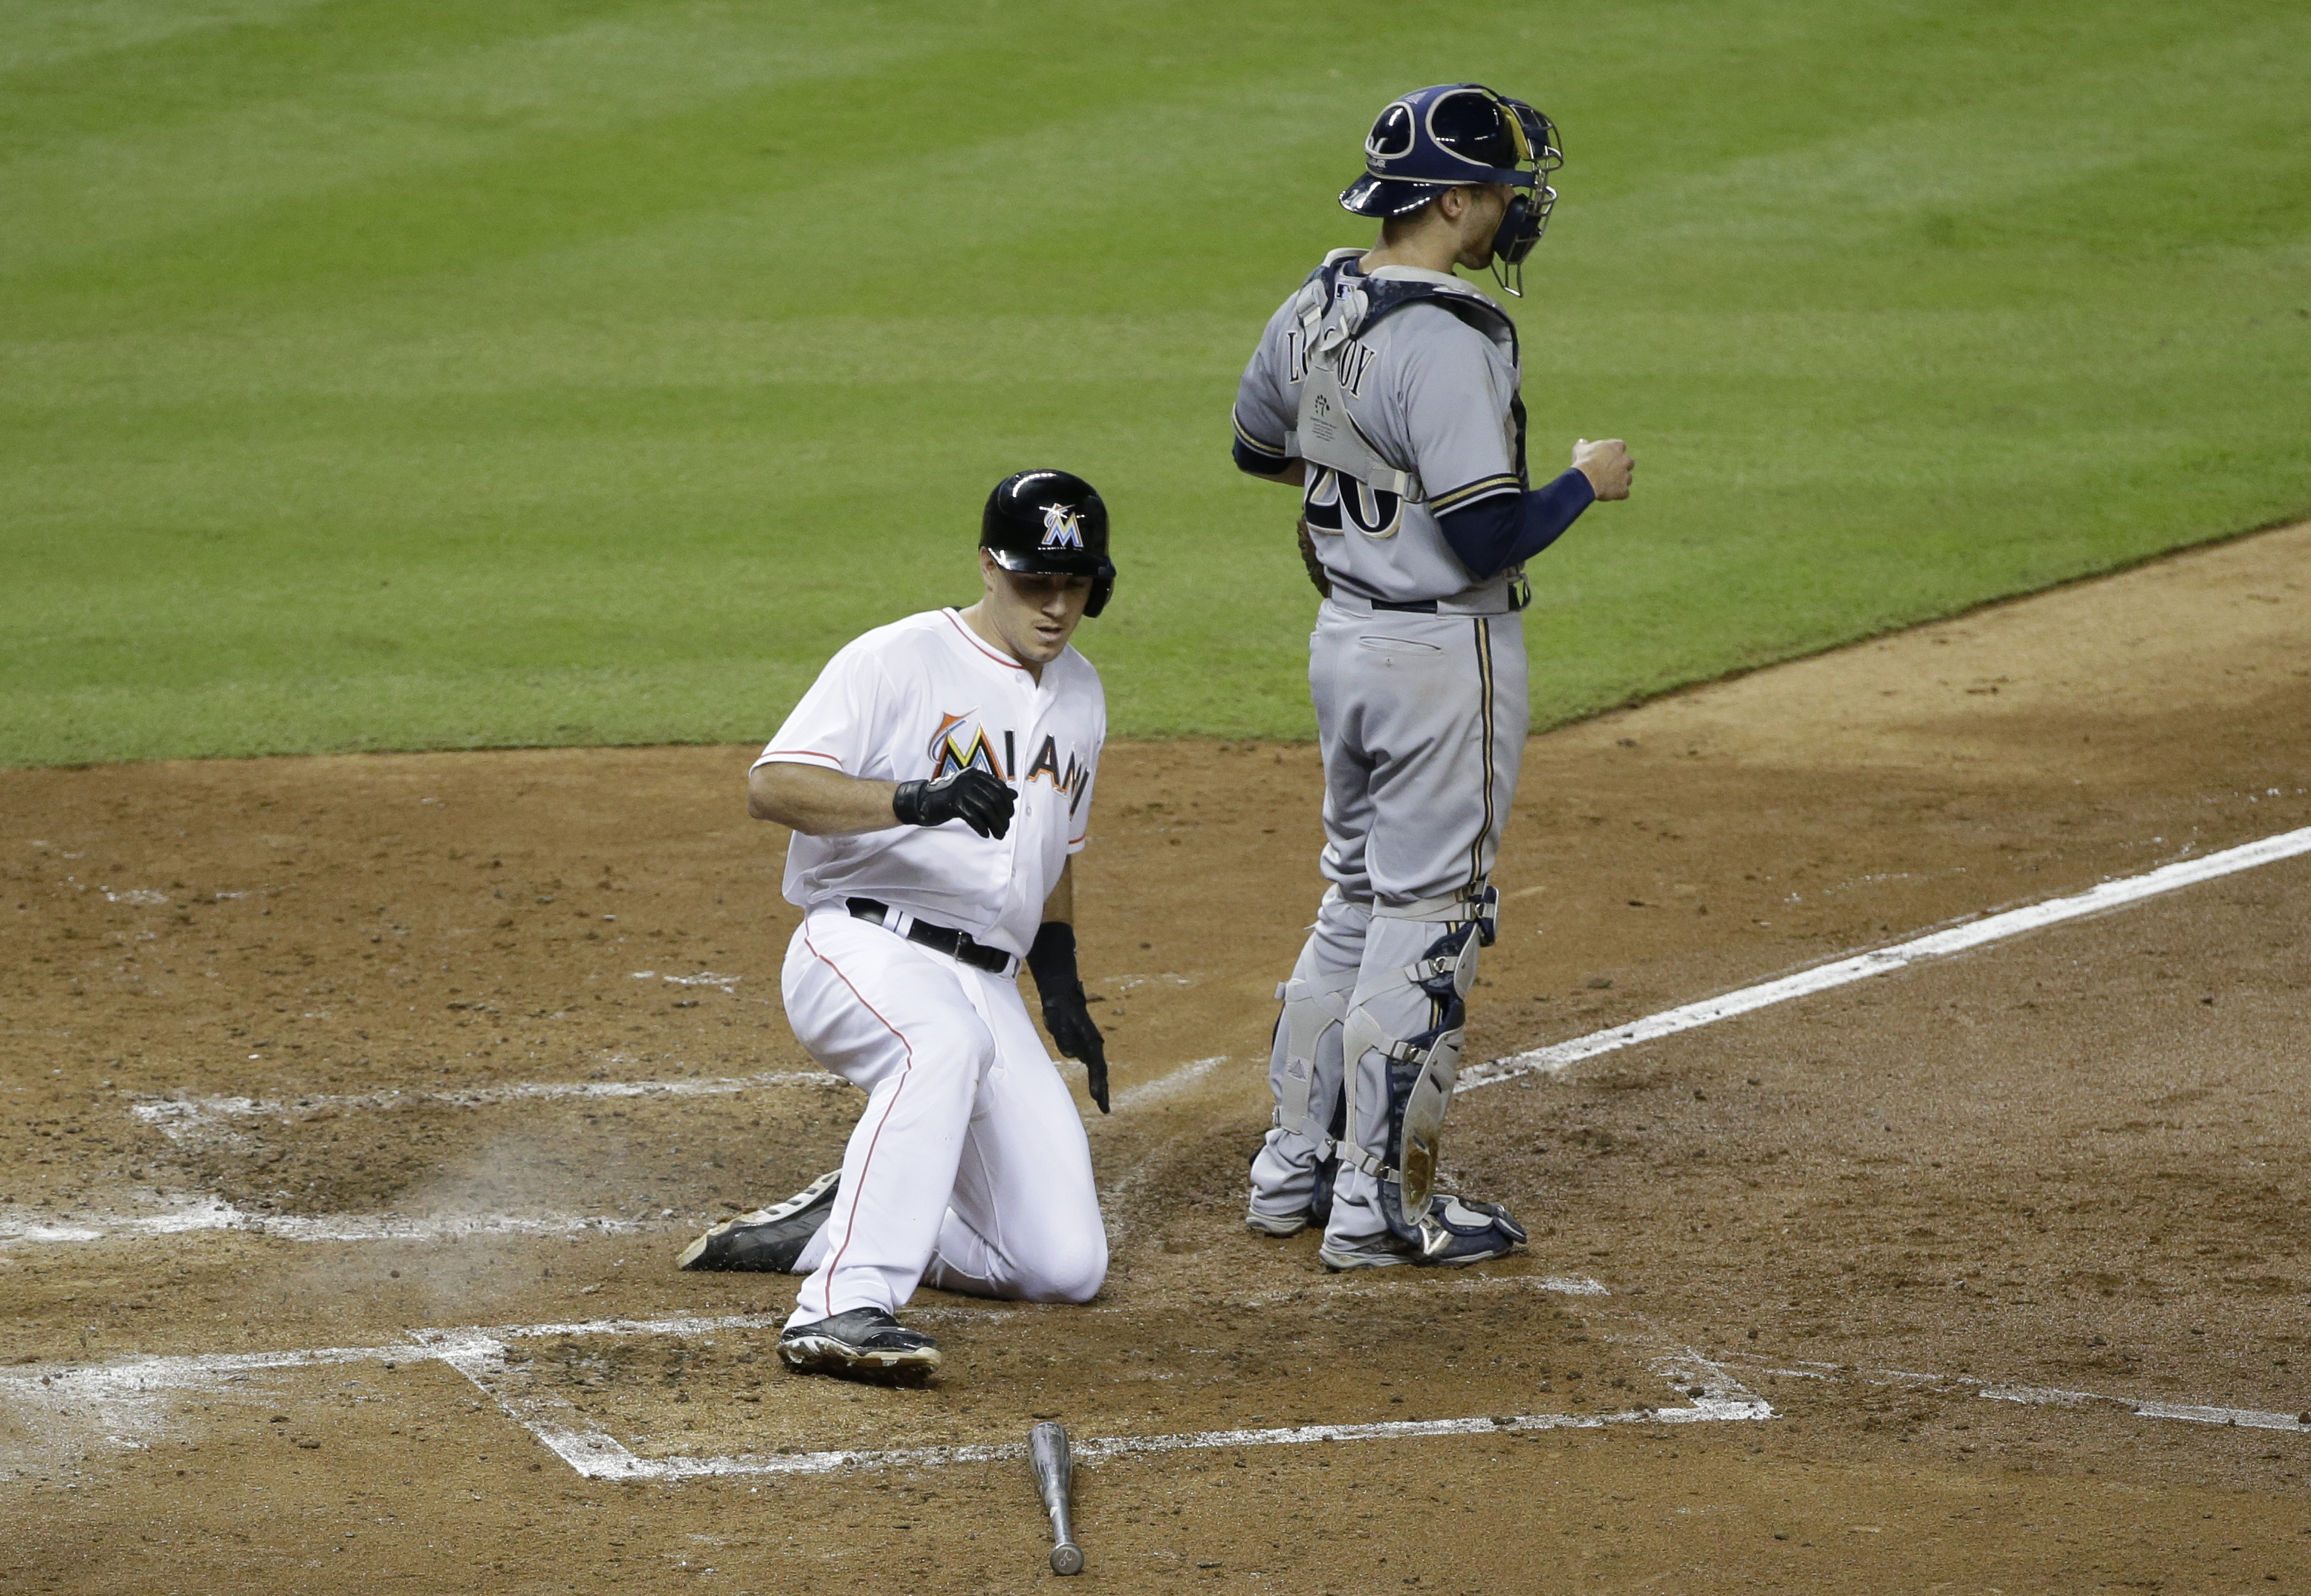 Miami Marlins' J.T. Realmuto slides into home plate as Milwaukee Brewers catcher Jonathan Lucroy waits for the throw after Realmuto hit an inside-the-park home run during the fourth inning of a baseball game against the Milwaukee Brewers, Tuesday, Sept. 8